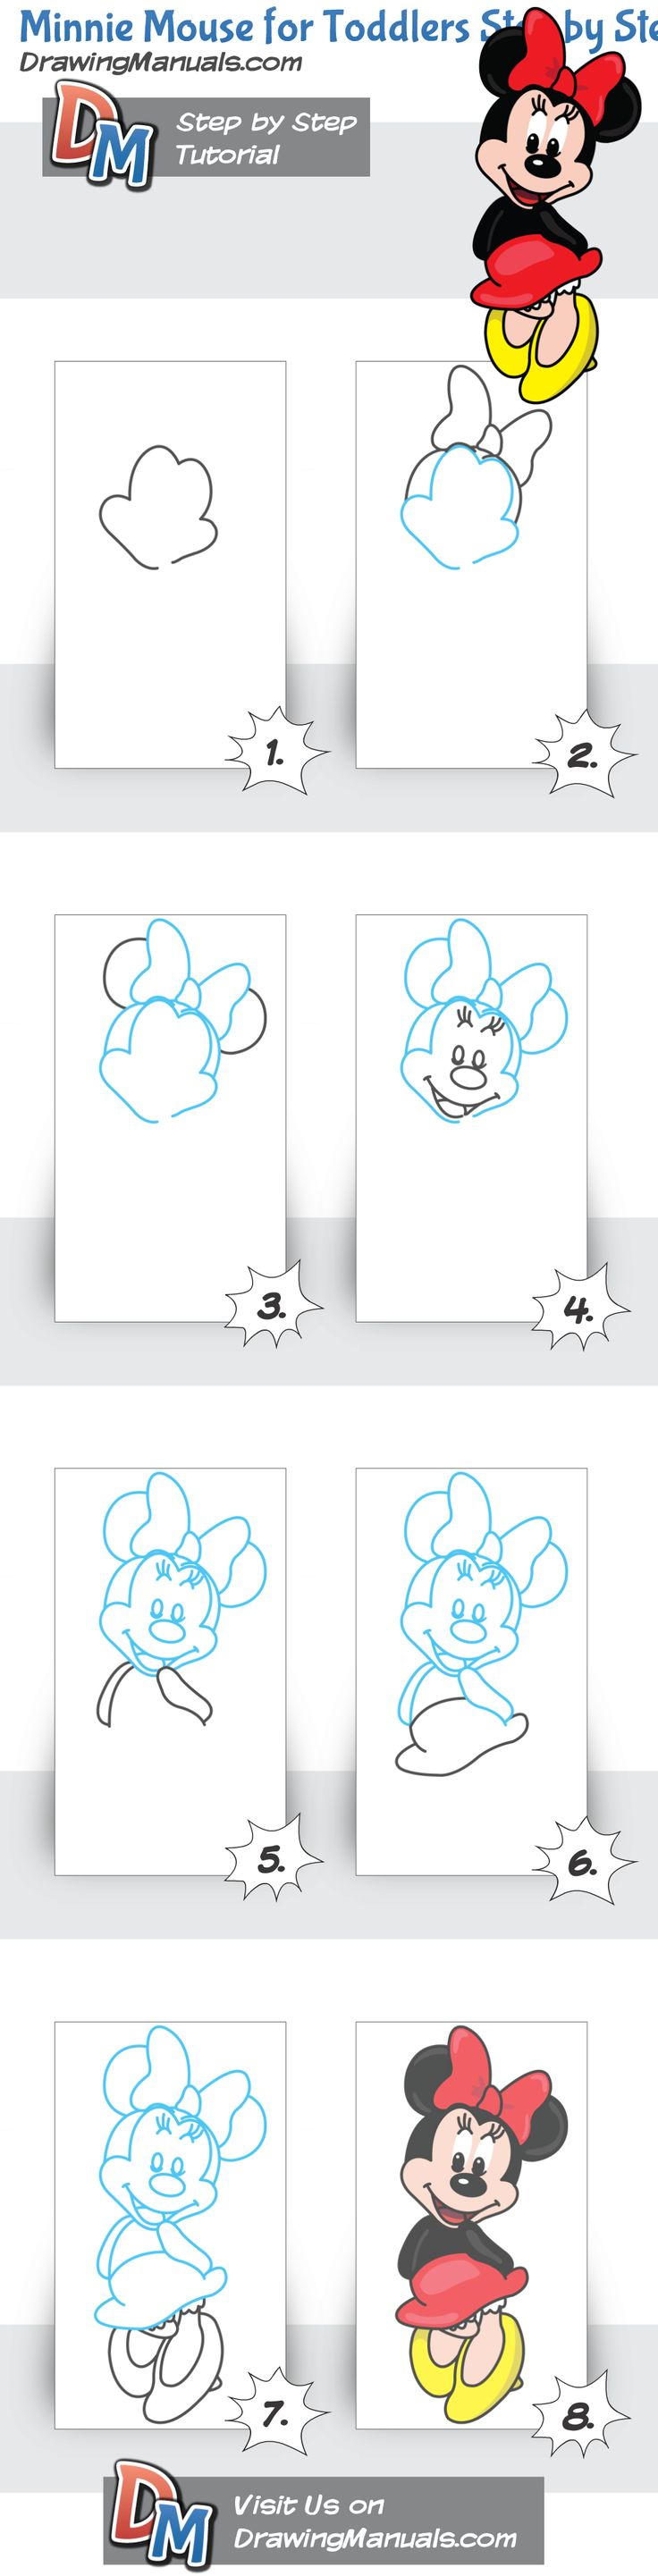 Minnie Mouse for Toddlers Step by Step Drawing Lesson http://drawingmanuals.com/manual/minnie-mouse-for-toddlers-step-by-step-drawing-lesson/ #drawing #kids #toddlers #illustration #cartoons